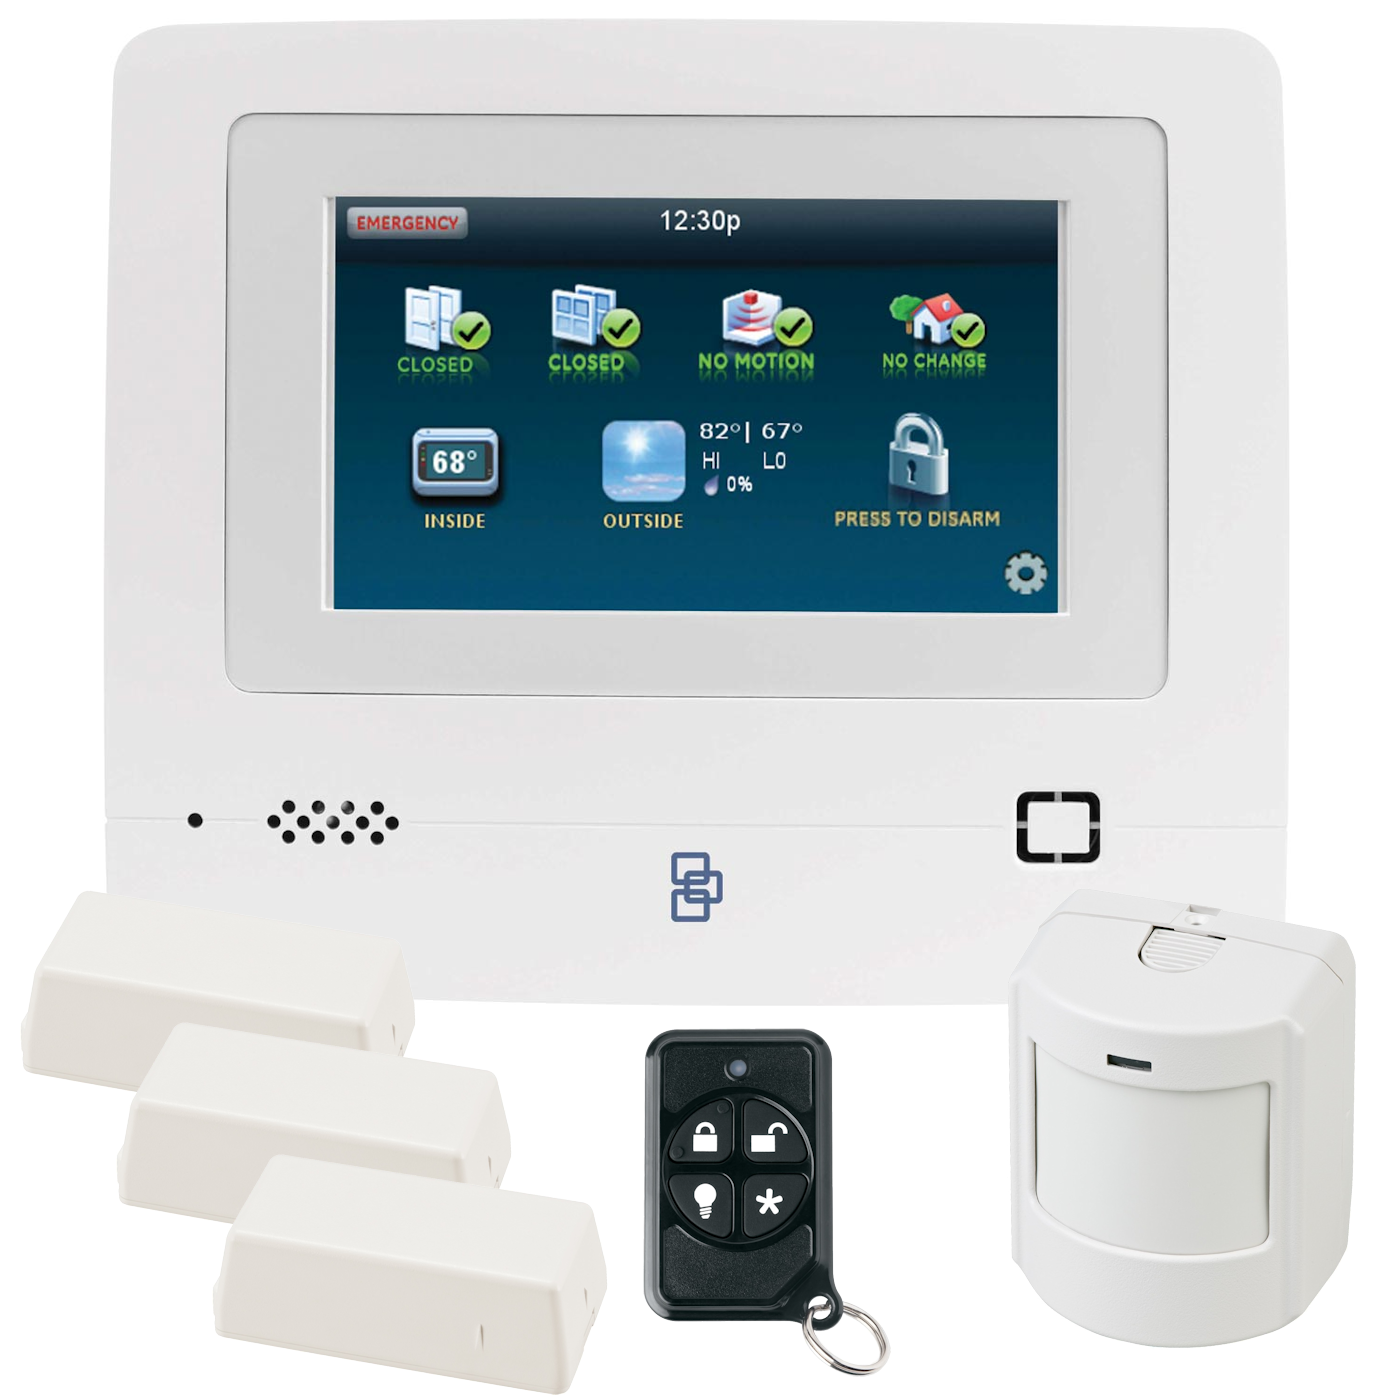 Interlogix Simon Xti 5 Landline Wireless Security System